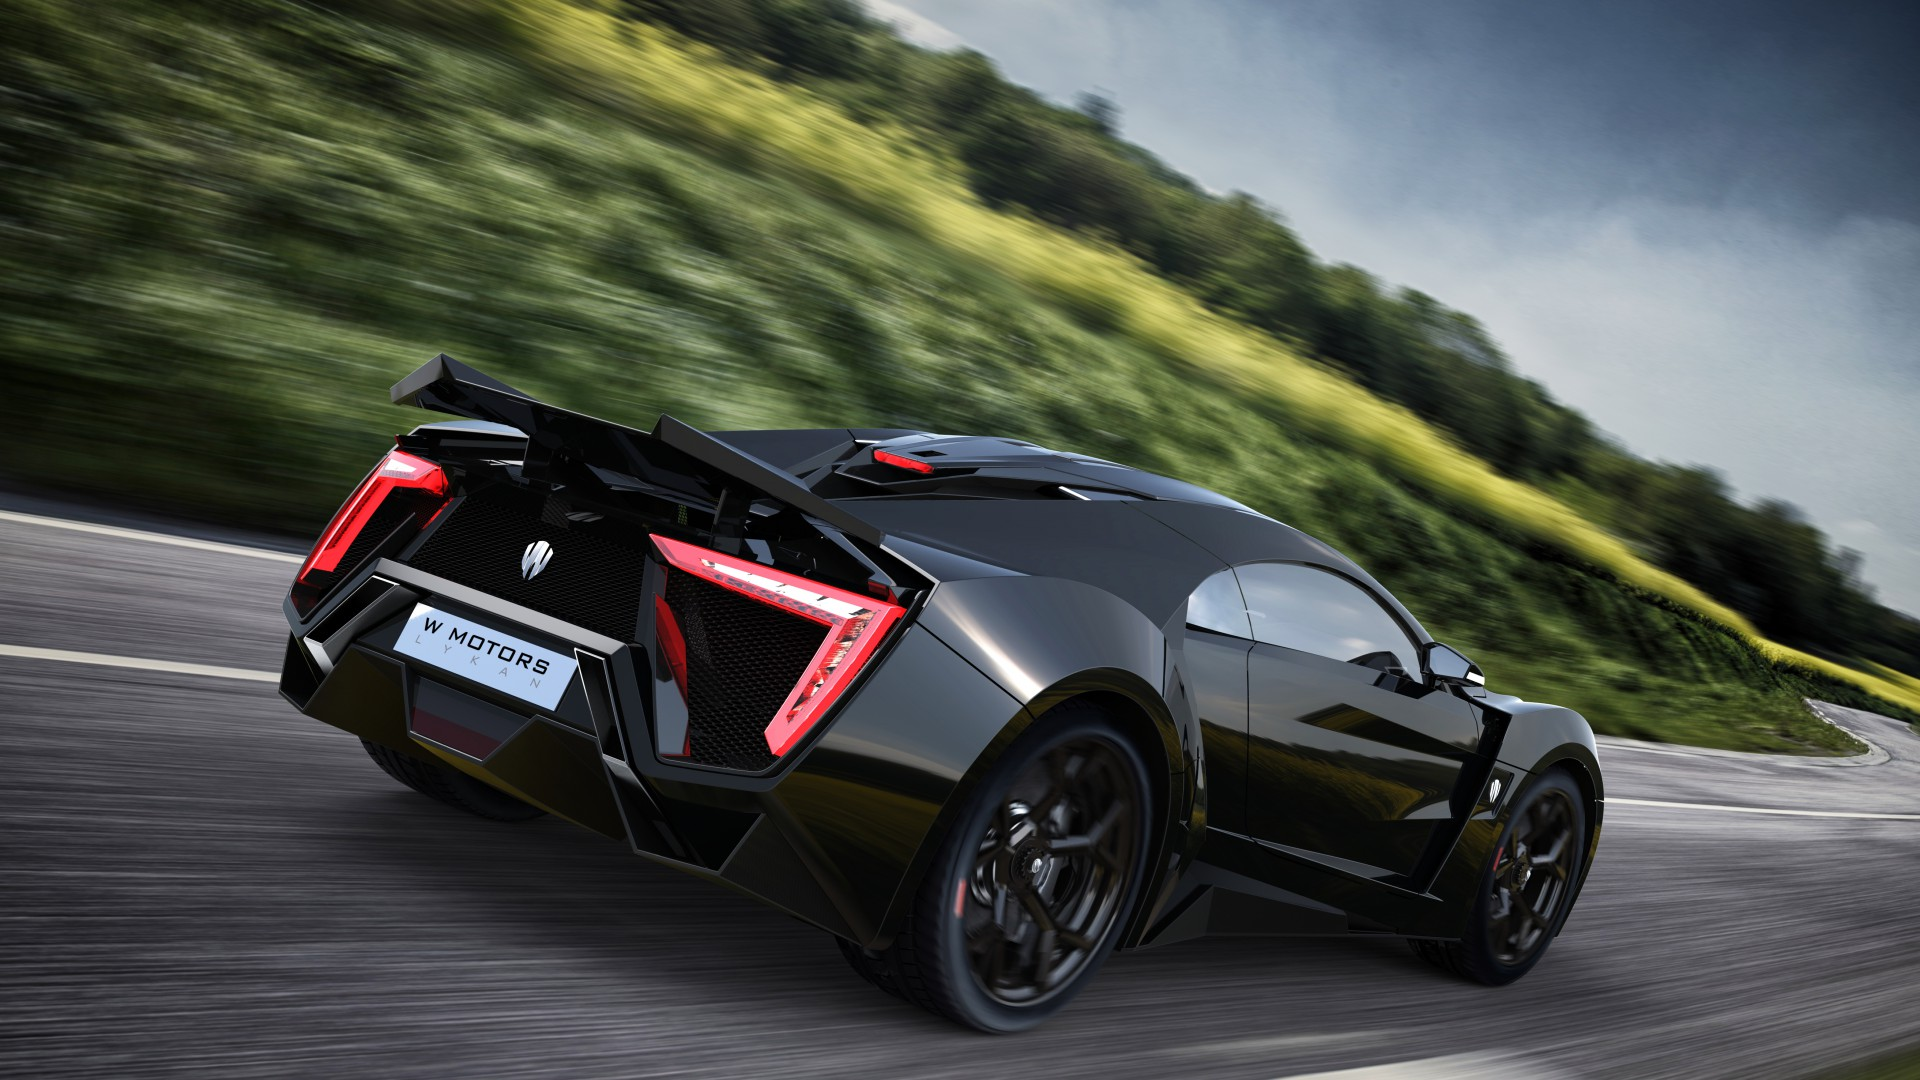 Lykan HyperSport, supercar, W Motors, sports car, luxury cars, speed, test drive, black, road (horizontal)